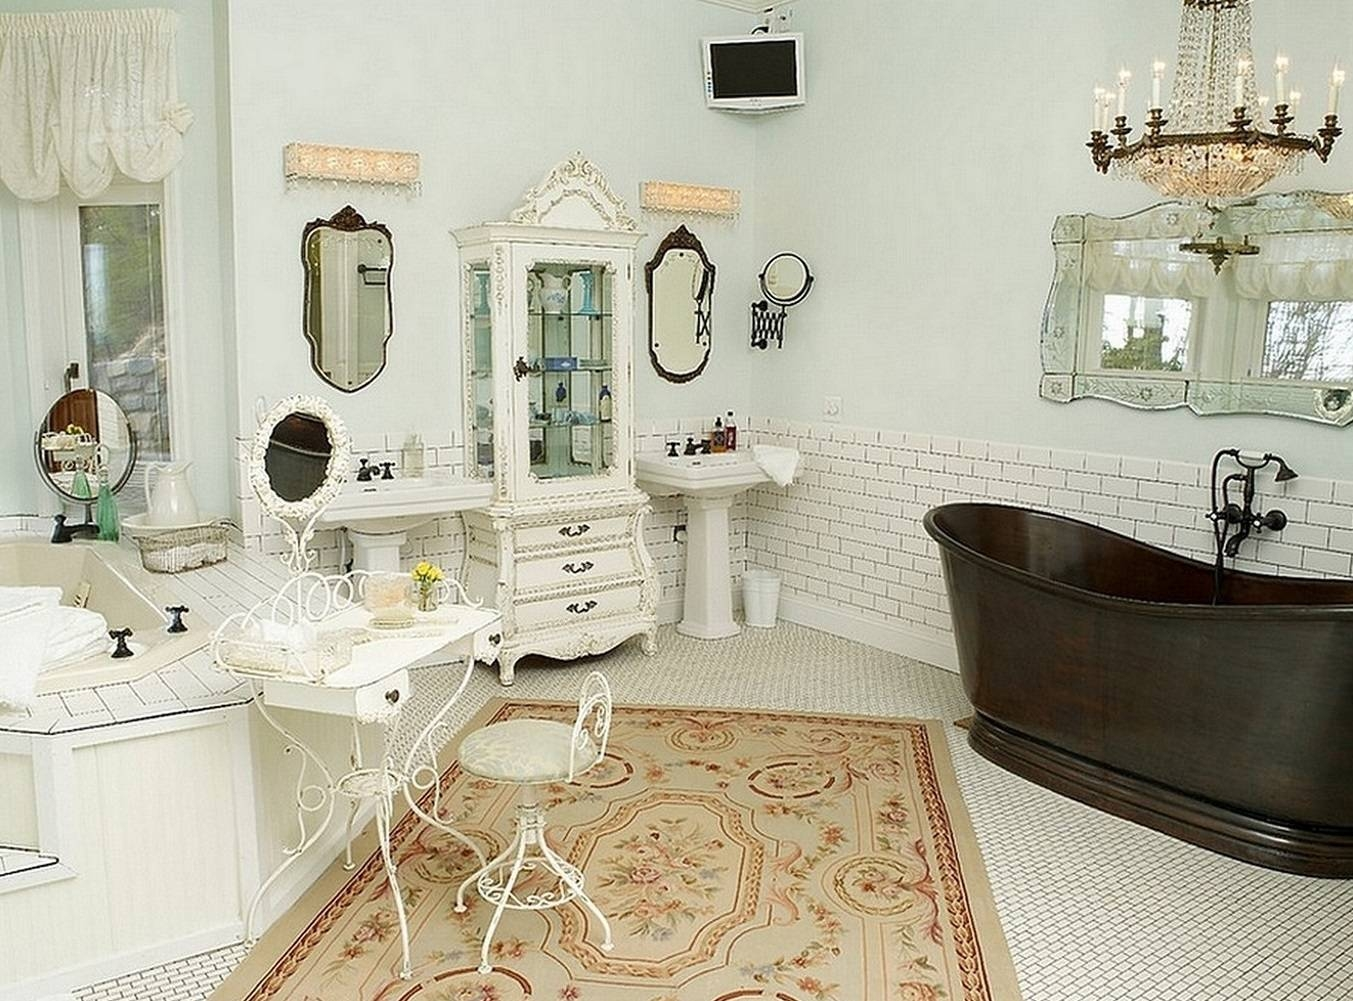 Shabby Chic Bathroom Rugs Ideas Intended For Shabby Chic Bathroom Mirrors (View 14 of 15)